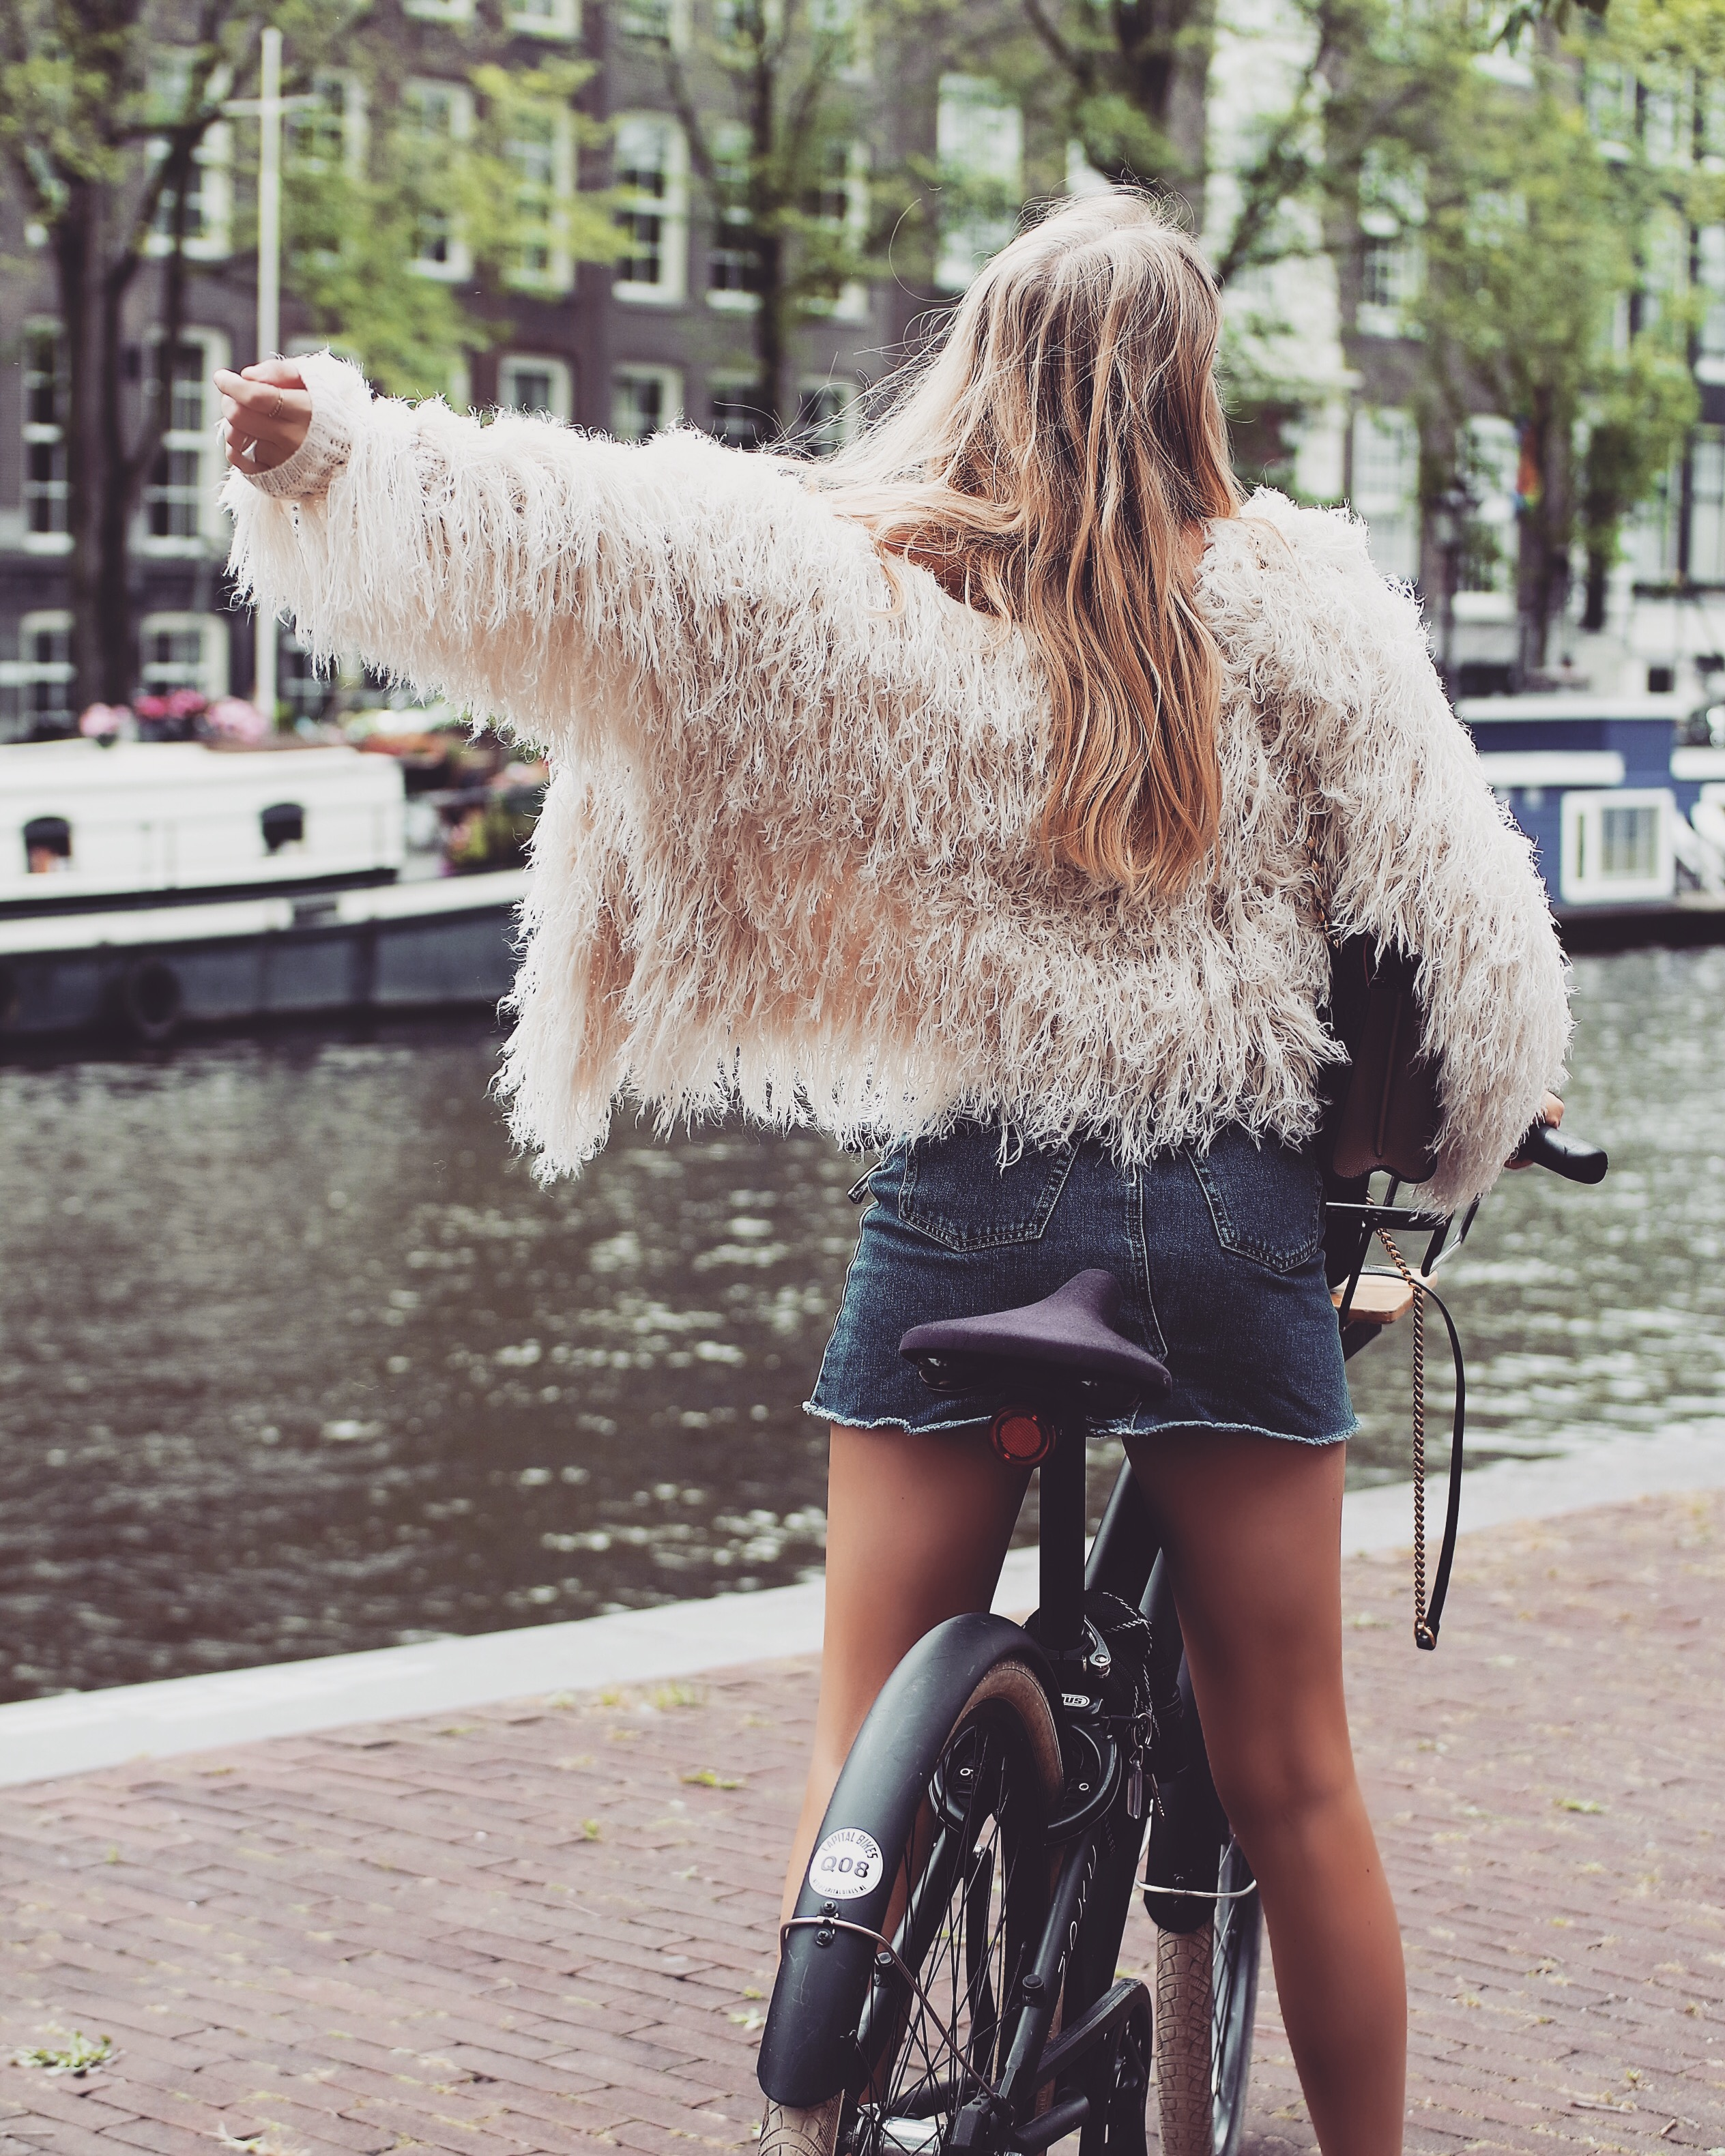 48 Hours in Amsterdam - Shaggy Knit Jacket